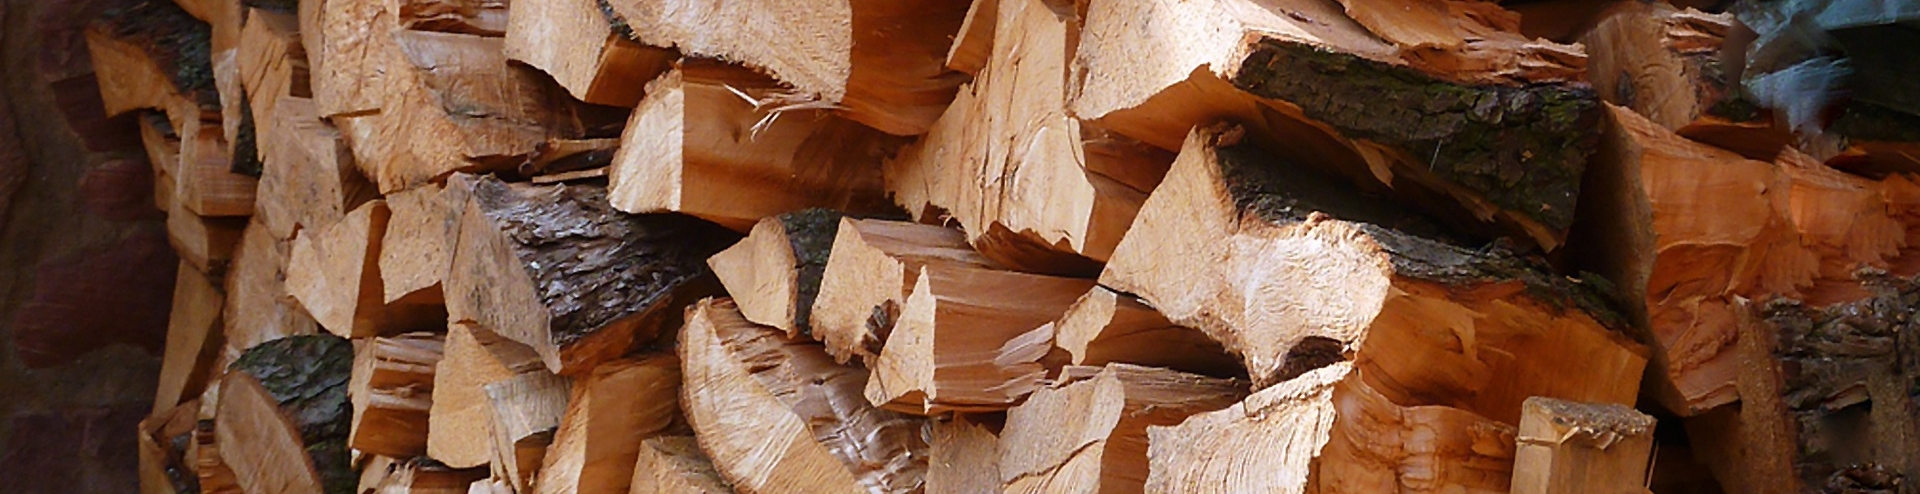 Sustainable Hardwood Logs